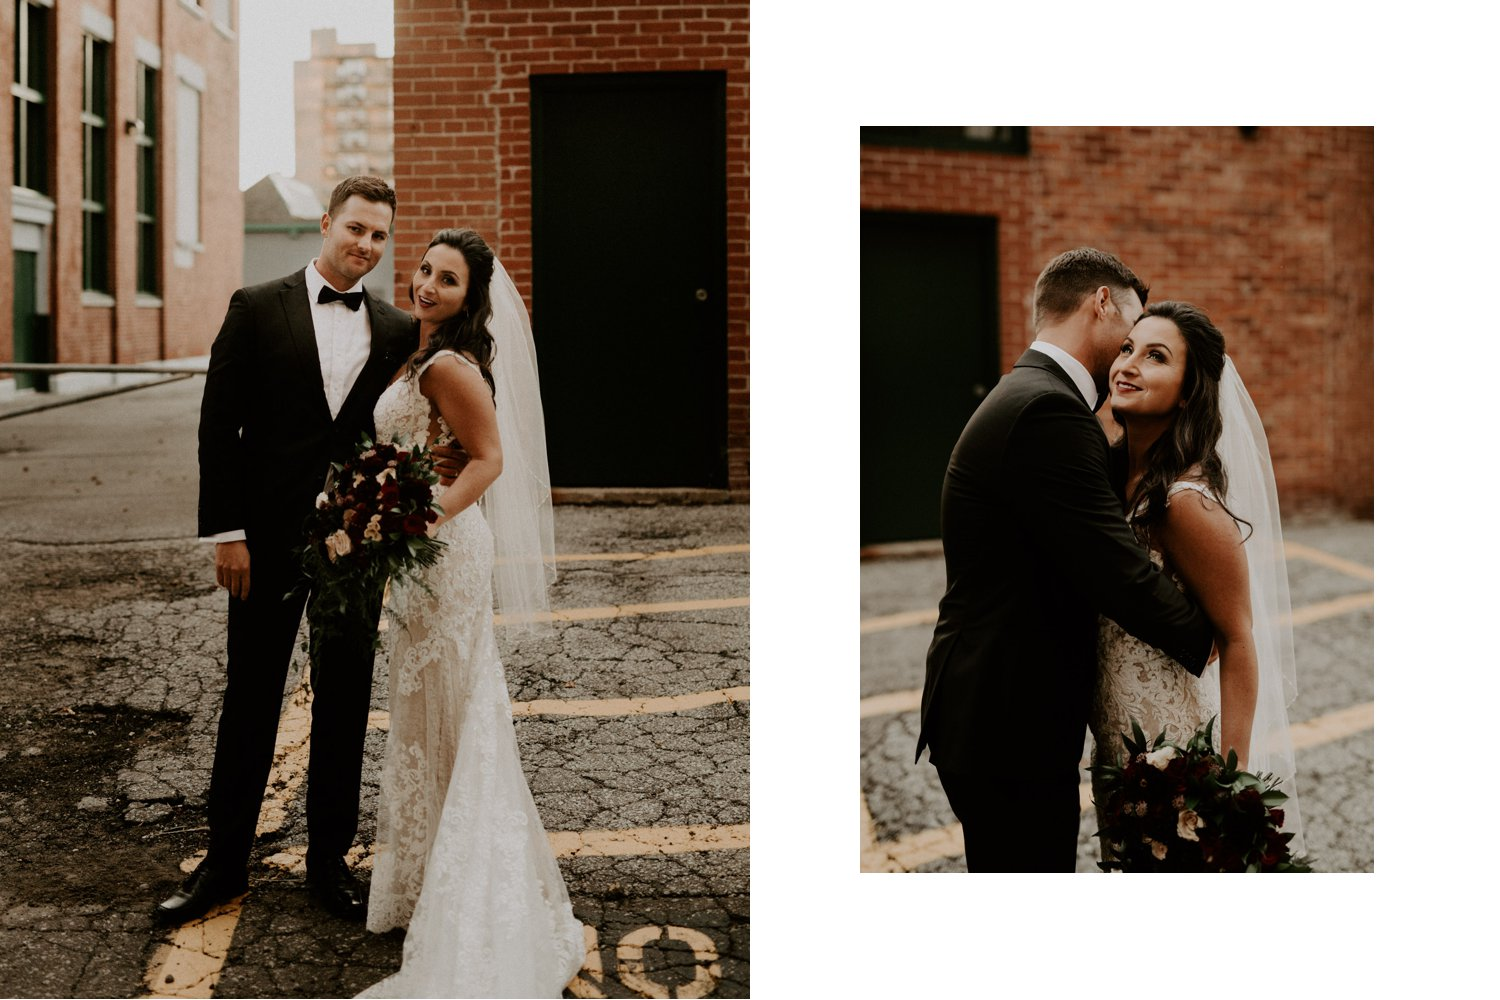 Liberty Village Wedding - bride and groom embrace in the alleyway